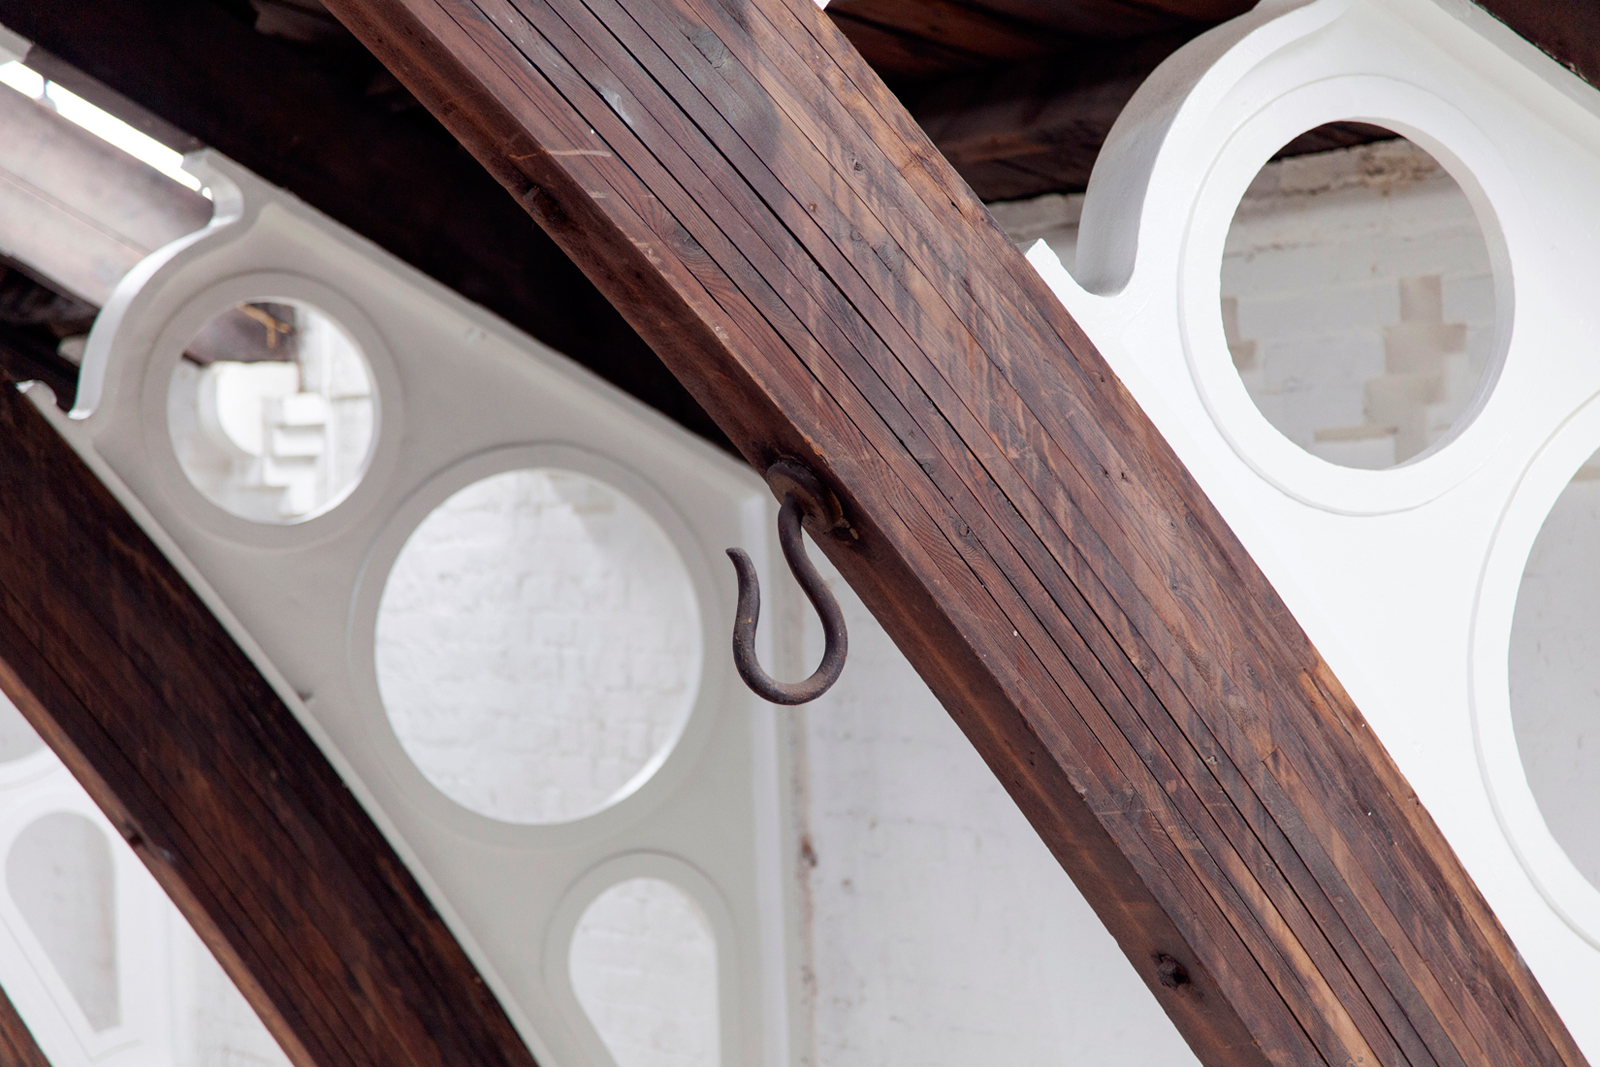 German-Gymnasium-x-The-Spaces-by-Emli-Bendixen_Laminated-roof-timbers-showing-cast-iron-fillets-and-supporting-brickwork,-and-original-cast-iron-hooks